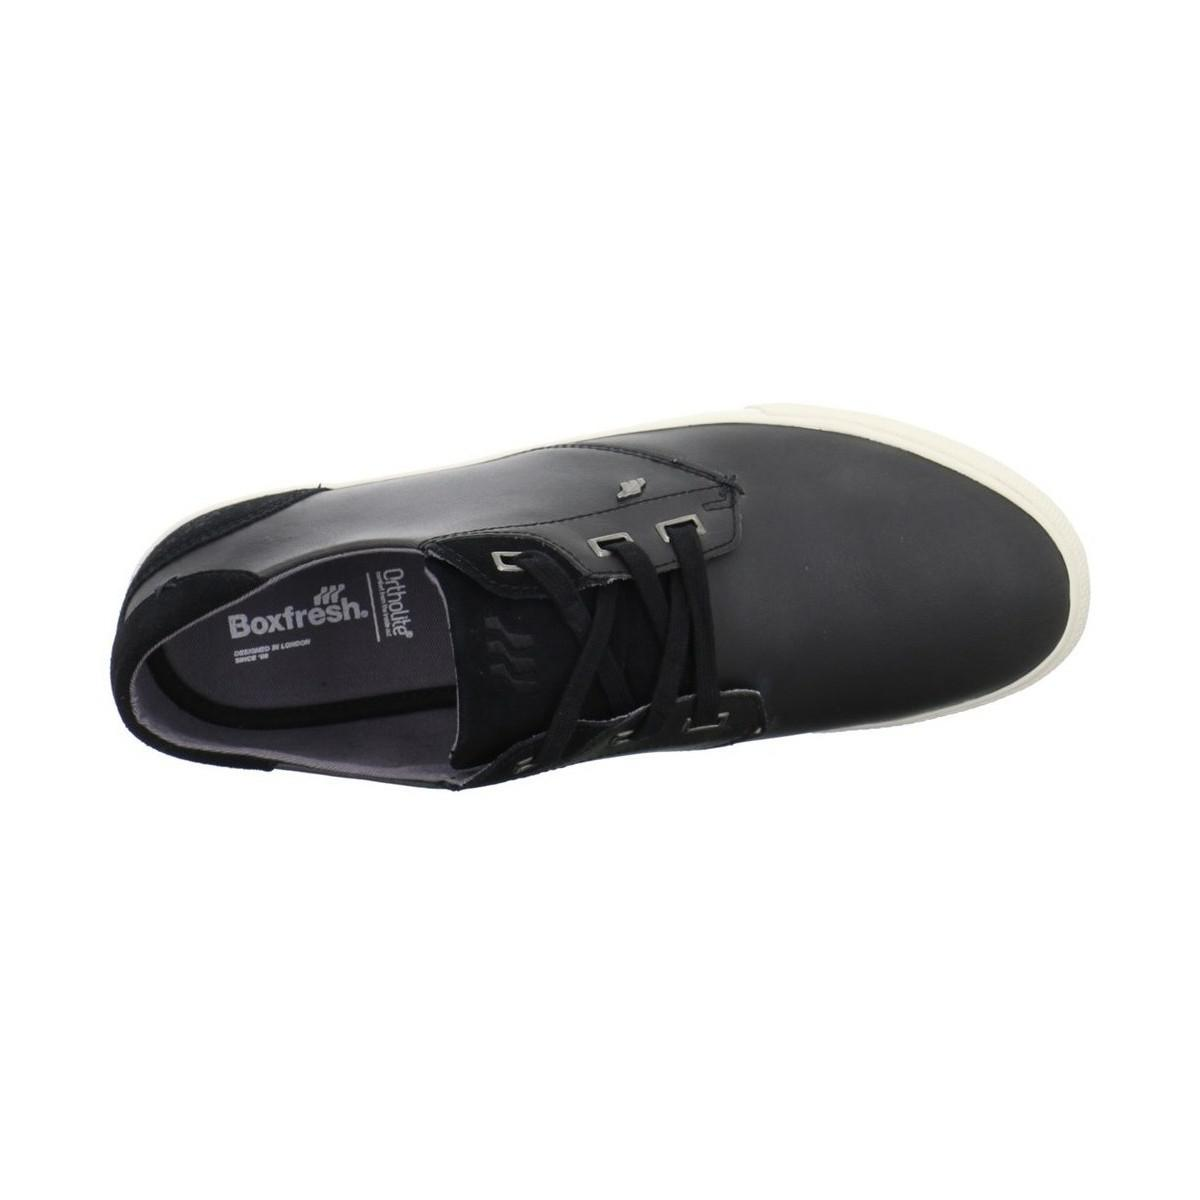 Boxfresh Stern Men's Shoes (trainers) In Black for Men